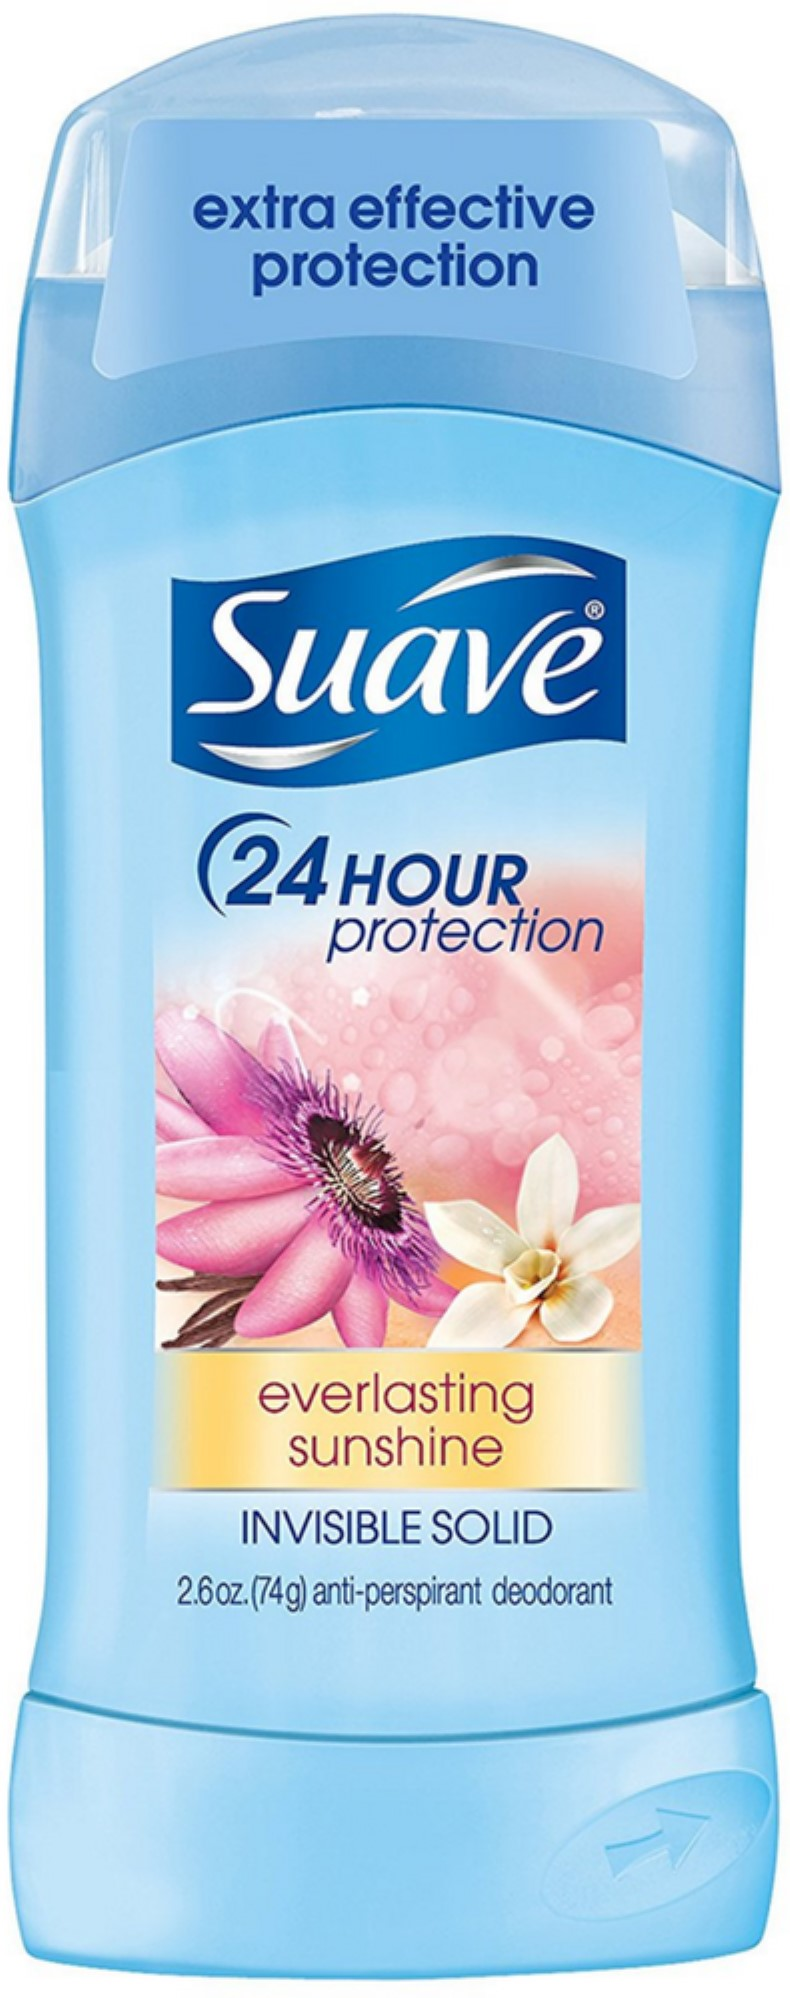 Suave Everlasting Sunshine 24 Hour Protection Invisible Solid Deodorant, 2.6 oz.